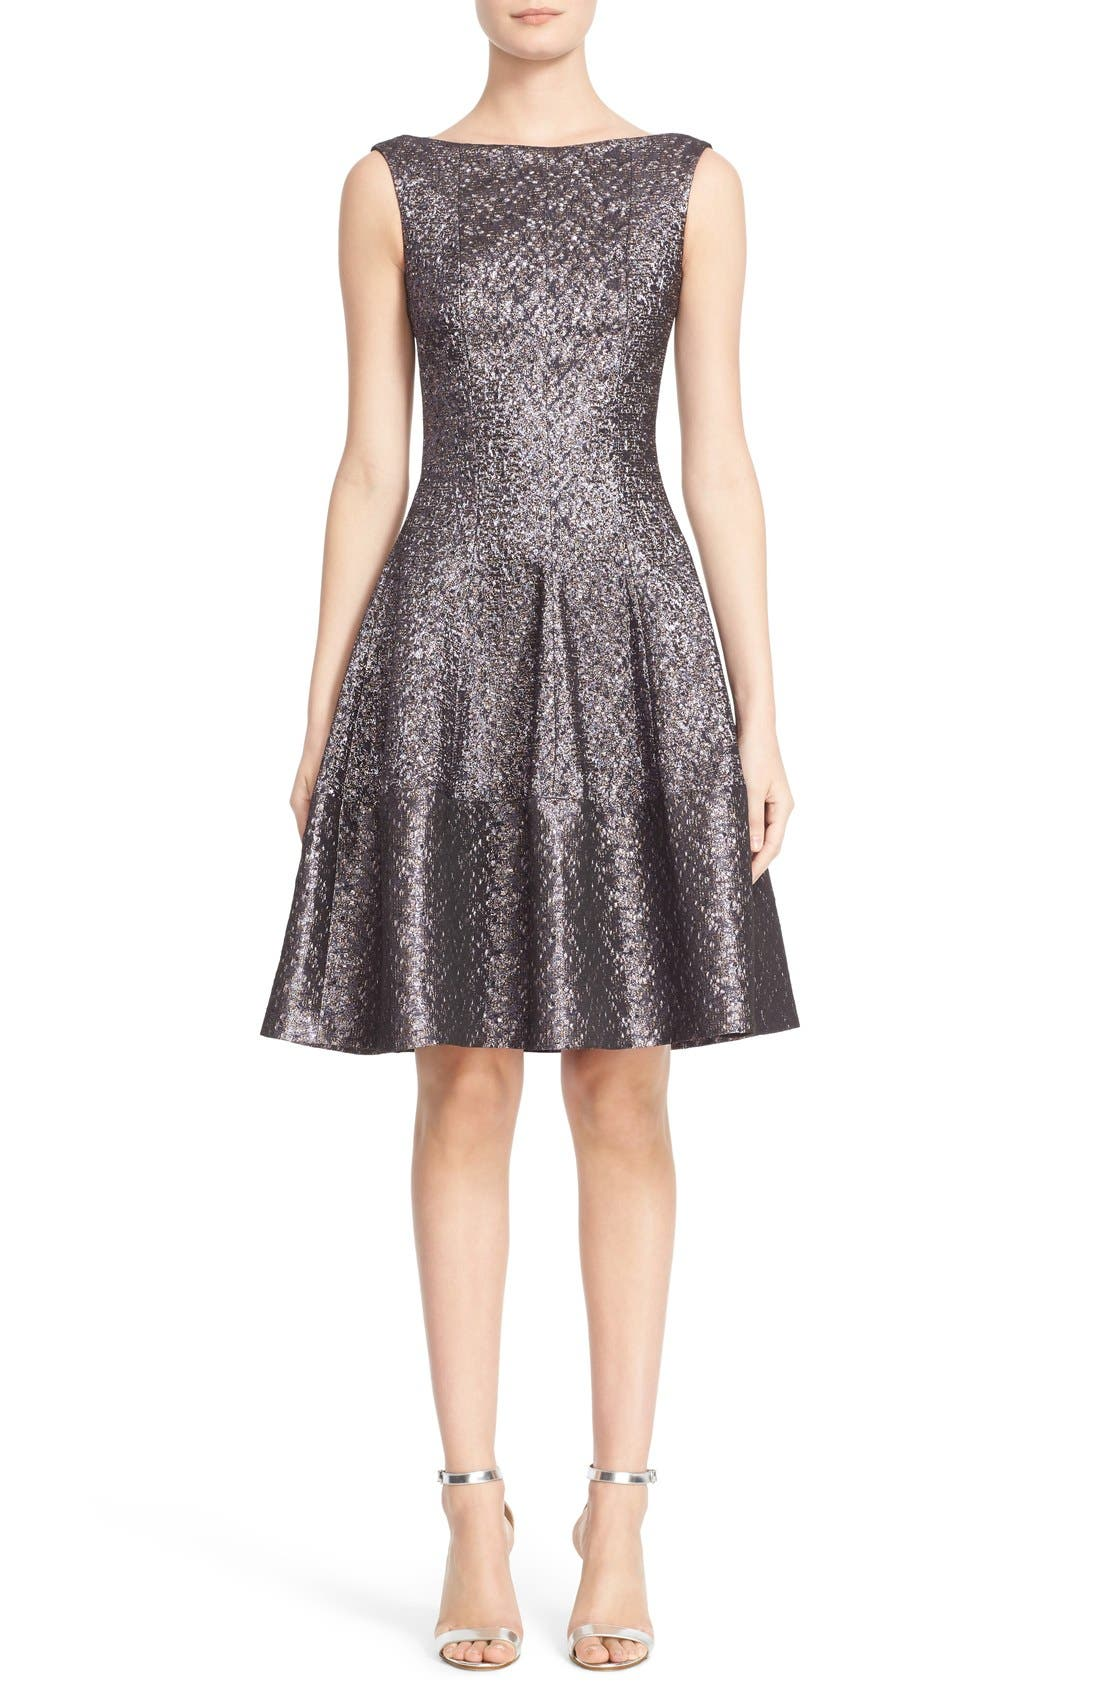 Talbot Runhof Hammered Metallic Jacquard Fit & Flare Dress